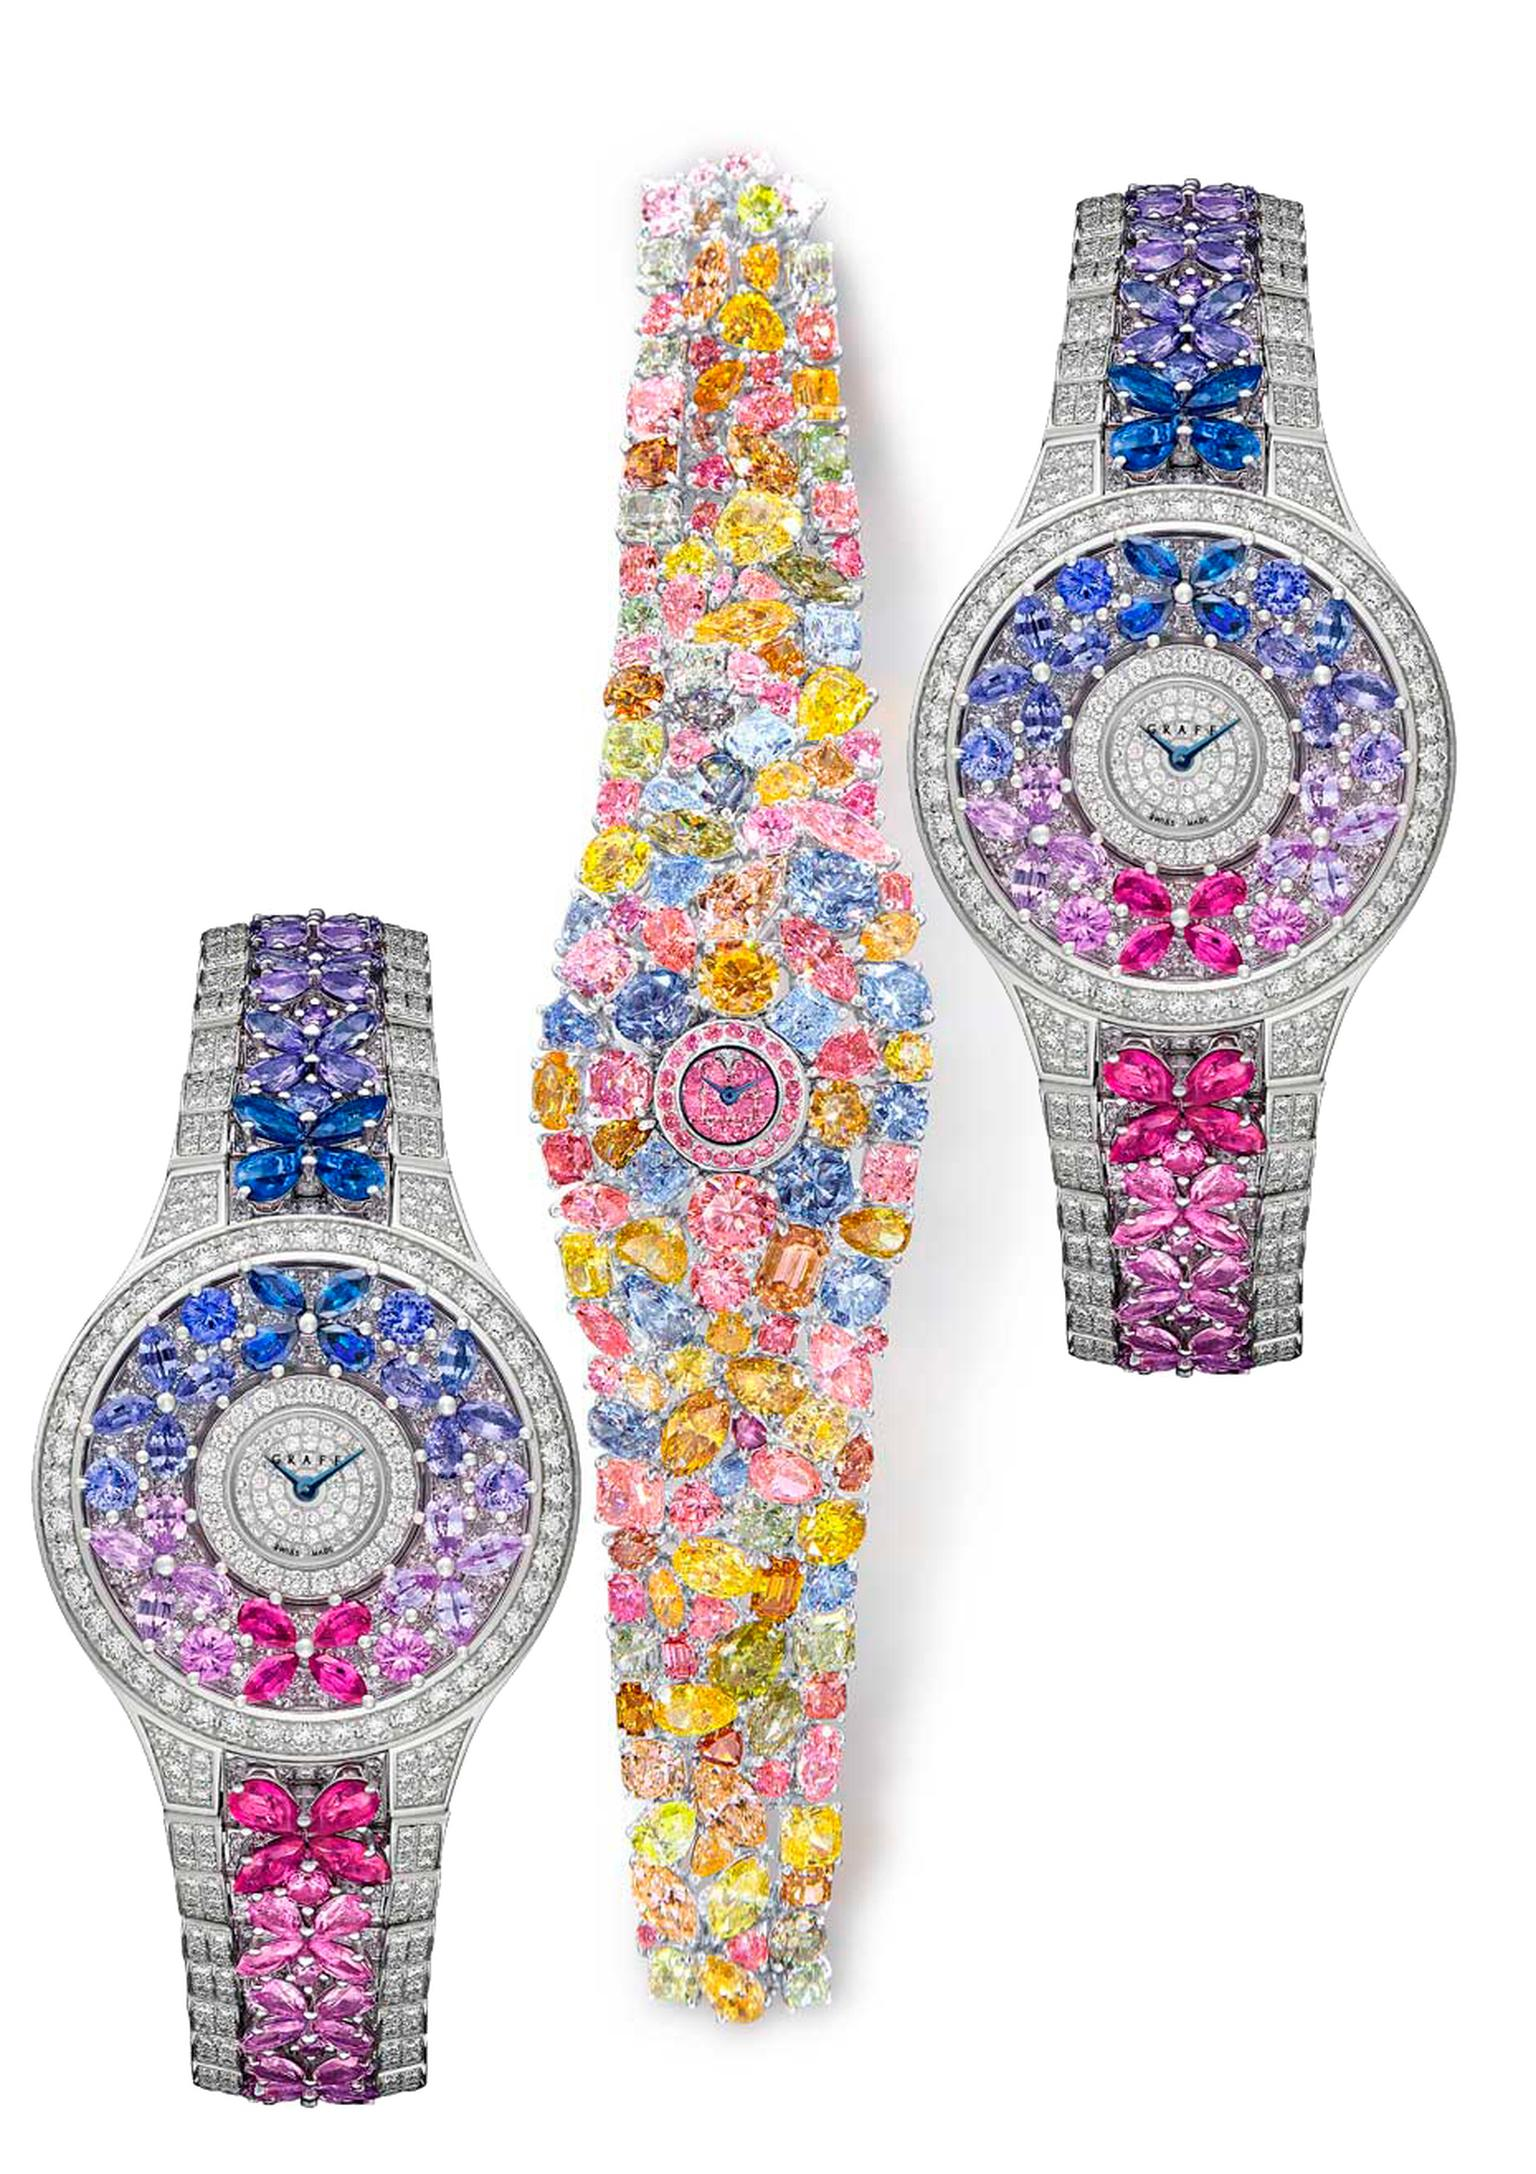 The Graff Hallucination is accompanied by the Butterfly watch which competed in the high jewellery category of the GPHG contest: set against a diamond background, each butterfly on the dial and bracelet is composed of four pear-shape gemstones sculpted fr